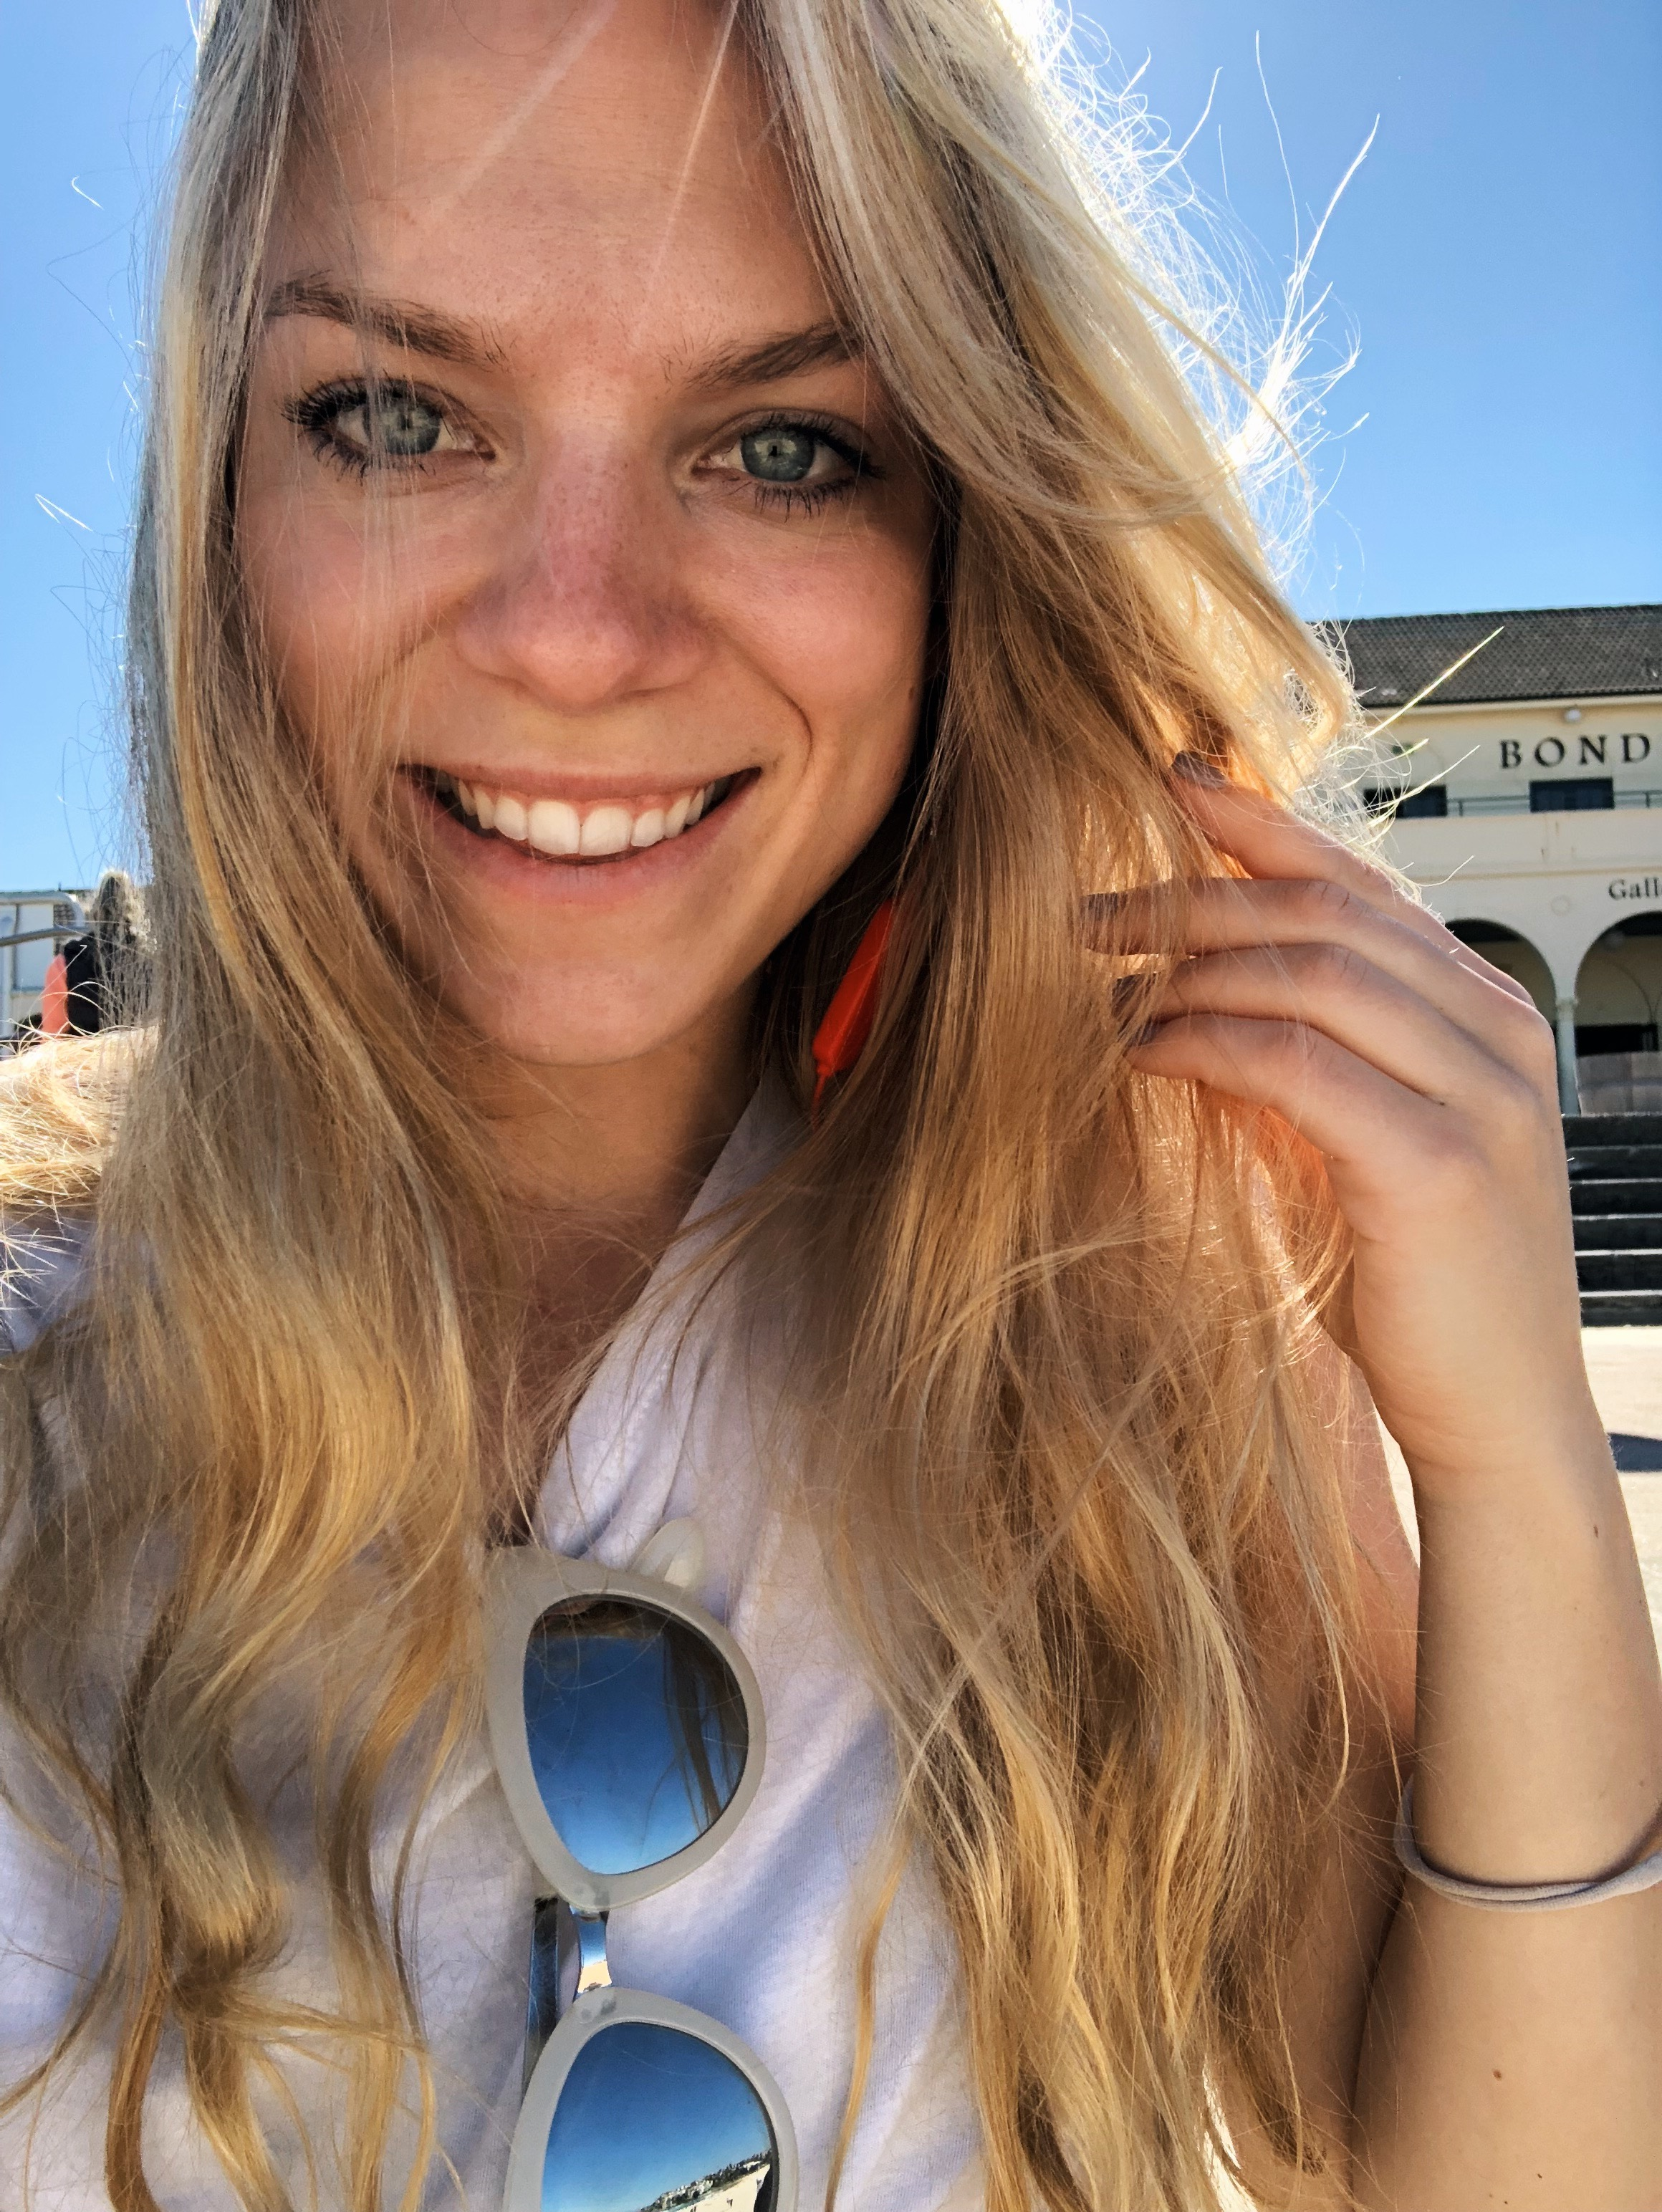 Meet our VP! - Julia Arhammar has worked with Bag-all from the very beginning. She is now Bag-alls Vice President and travels around the world launching our brand in new markets. Literally no one can pack more like a pro. Get her best travel tips and hacks here!